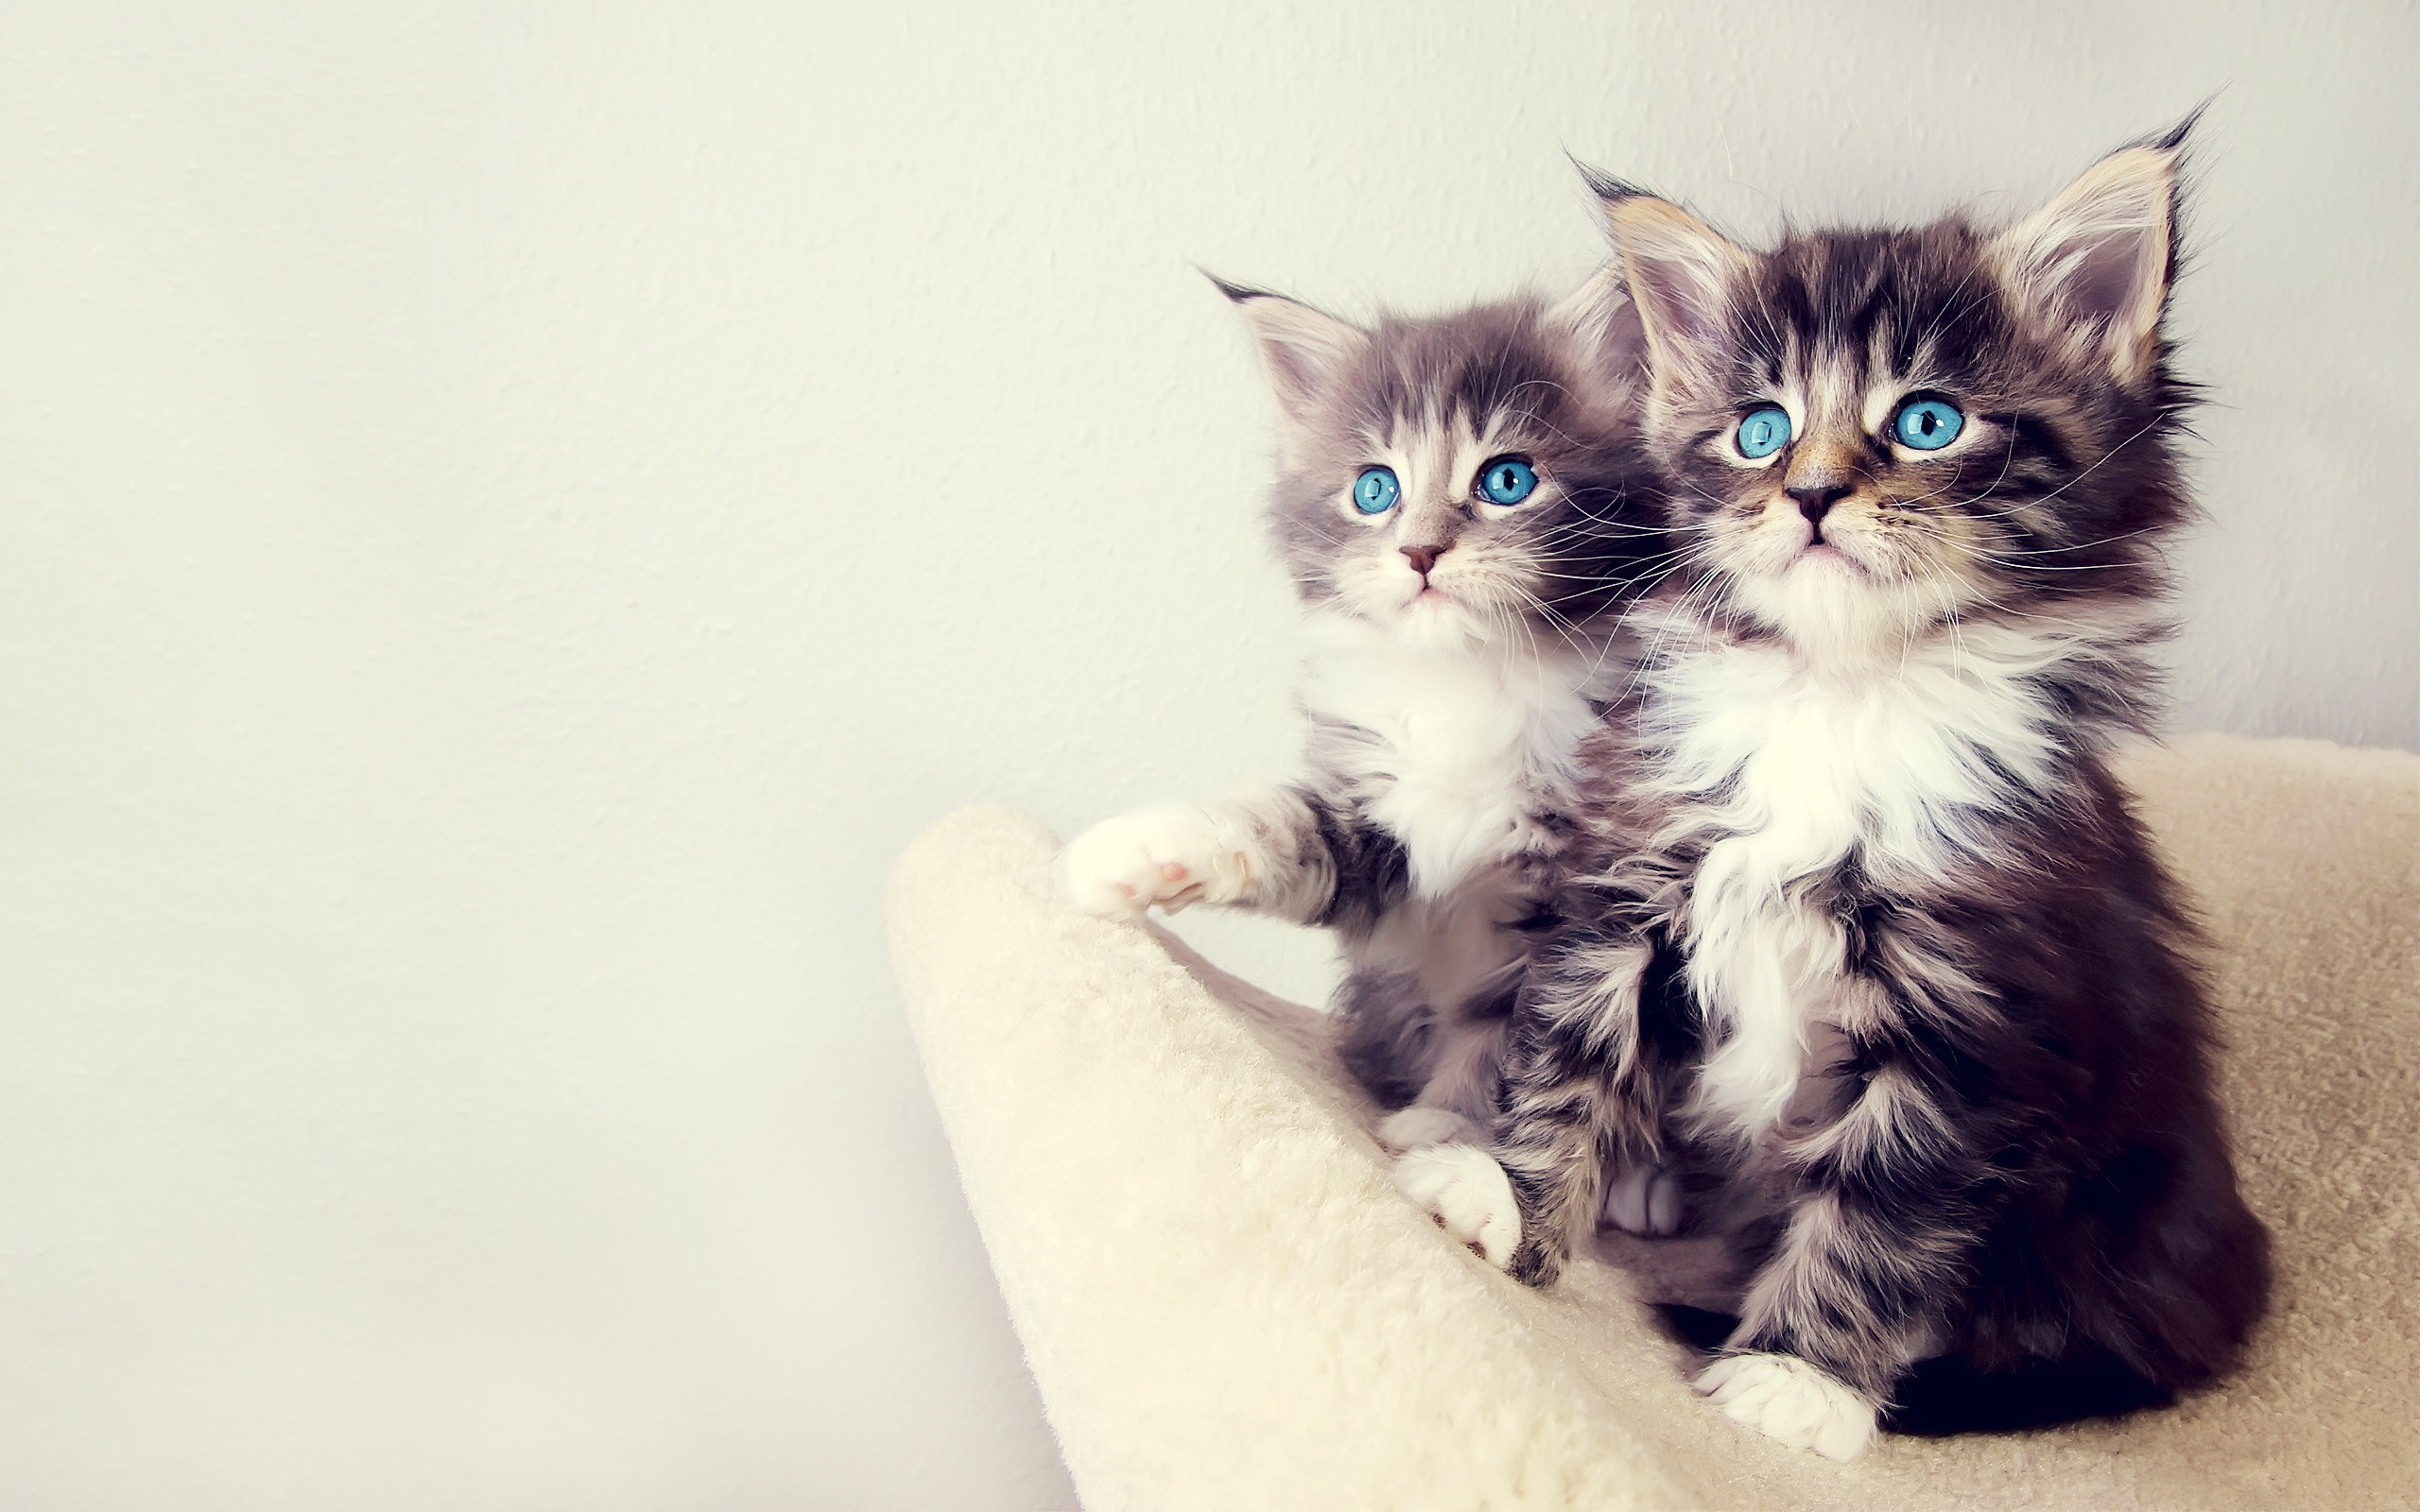 Lovely Kittens Blue Eyes Photo